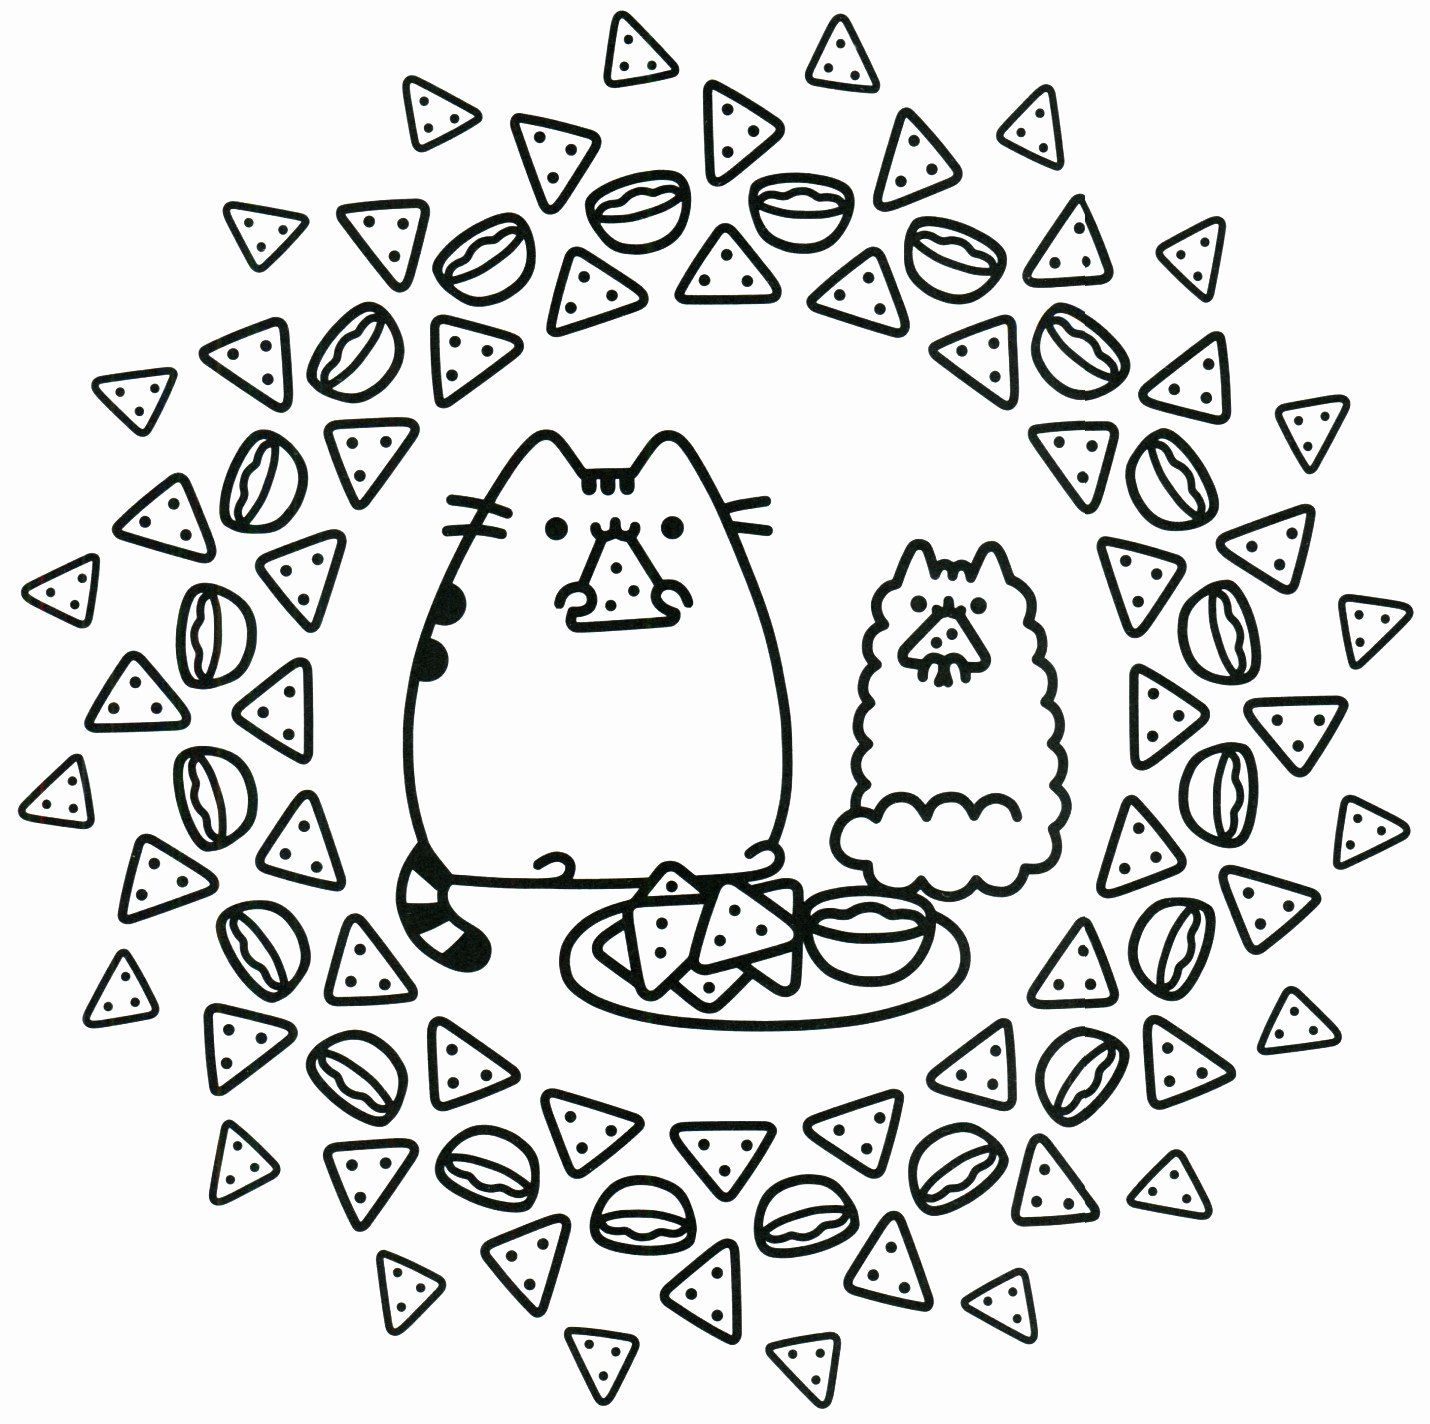 Free Printable Summer Coloring Pages Fresh Pusheen Coloring Pages Summer Pusheen Coloring Pages Unicorn Coloring Pages Cute Coloring Pages